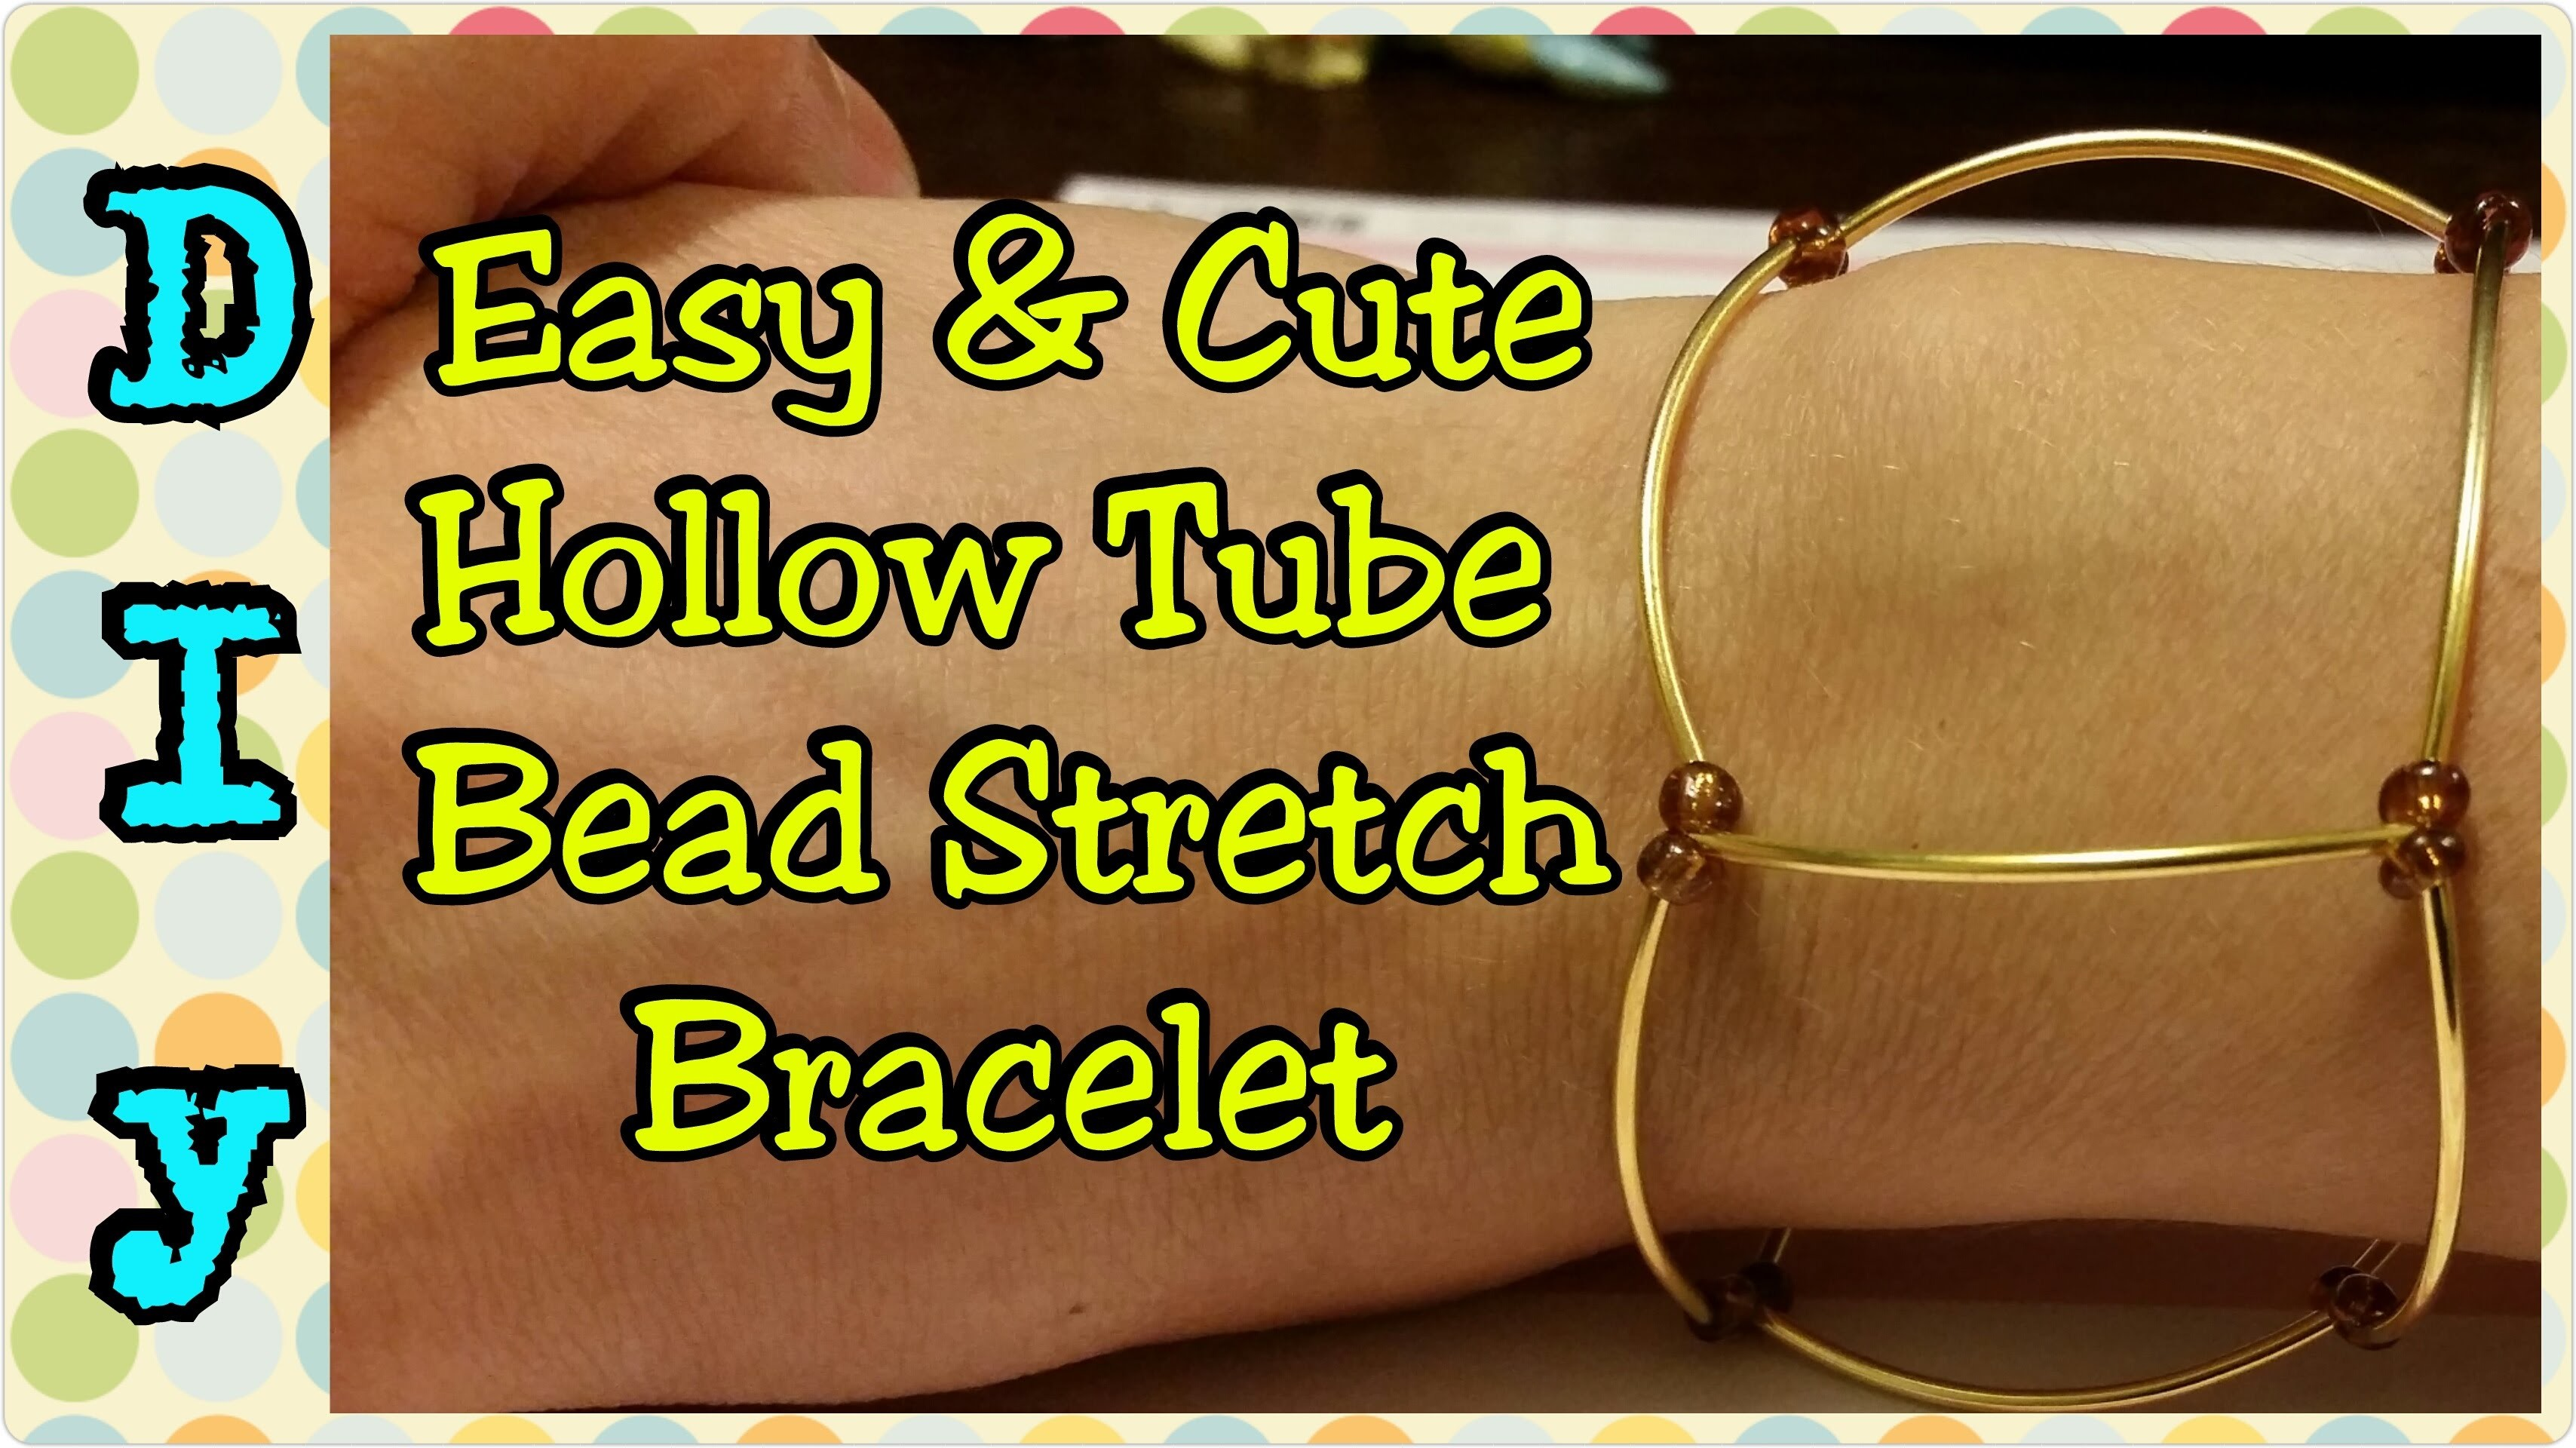 DIY Easy and Cute Hollow Tube Bead Stretch Bracelet